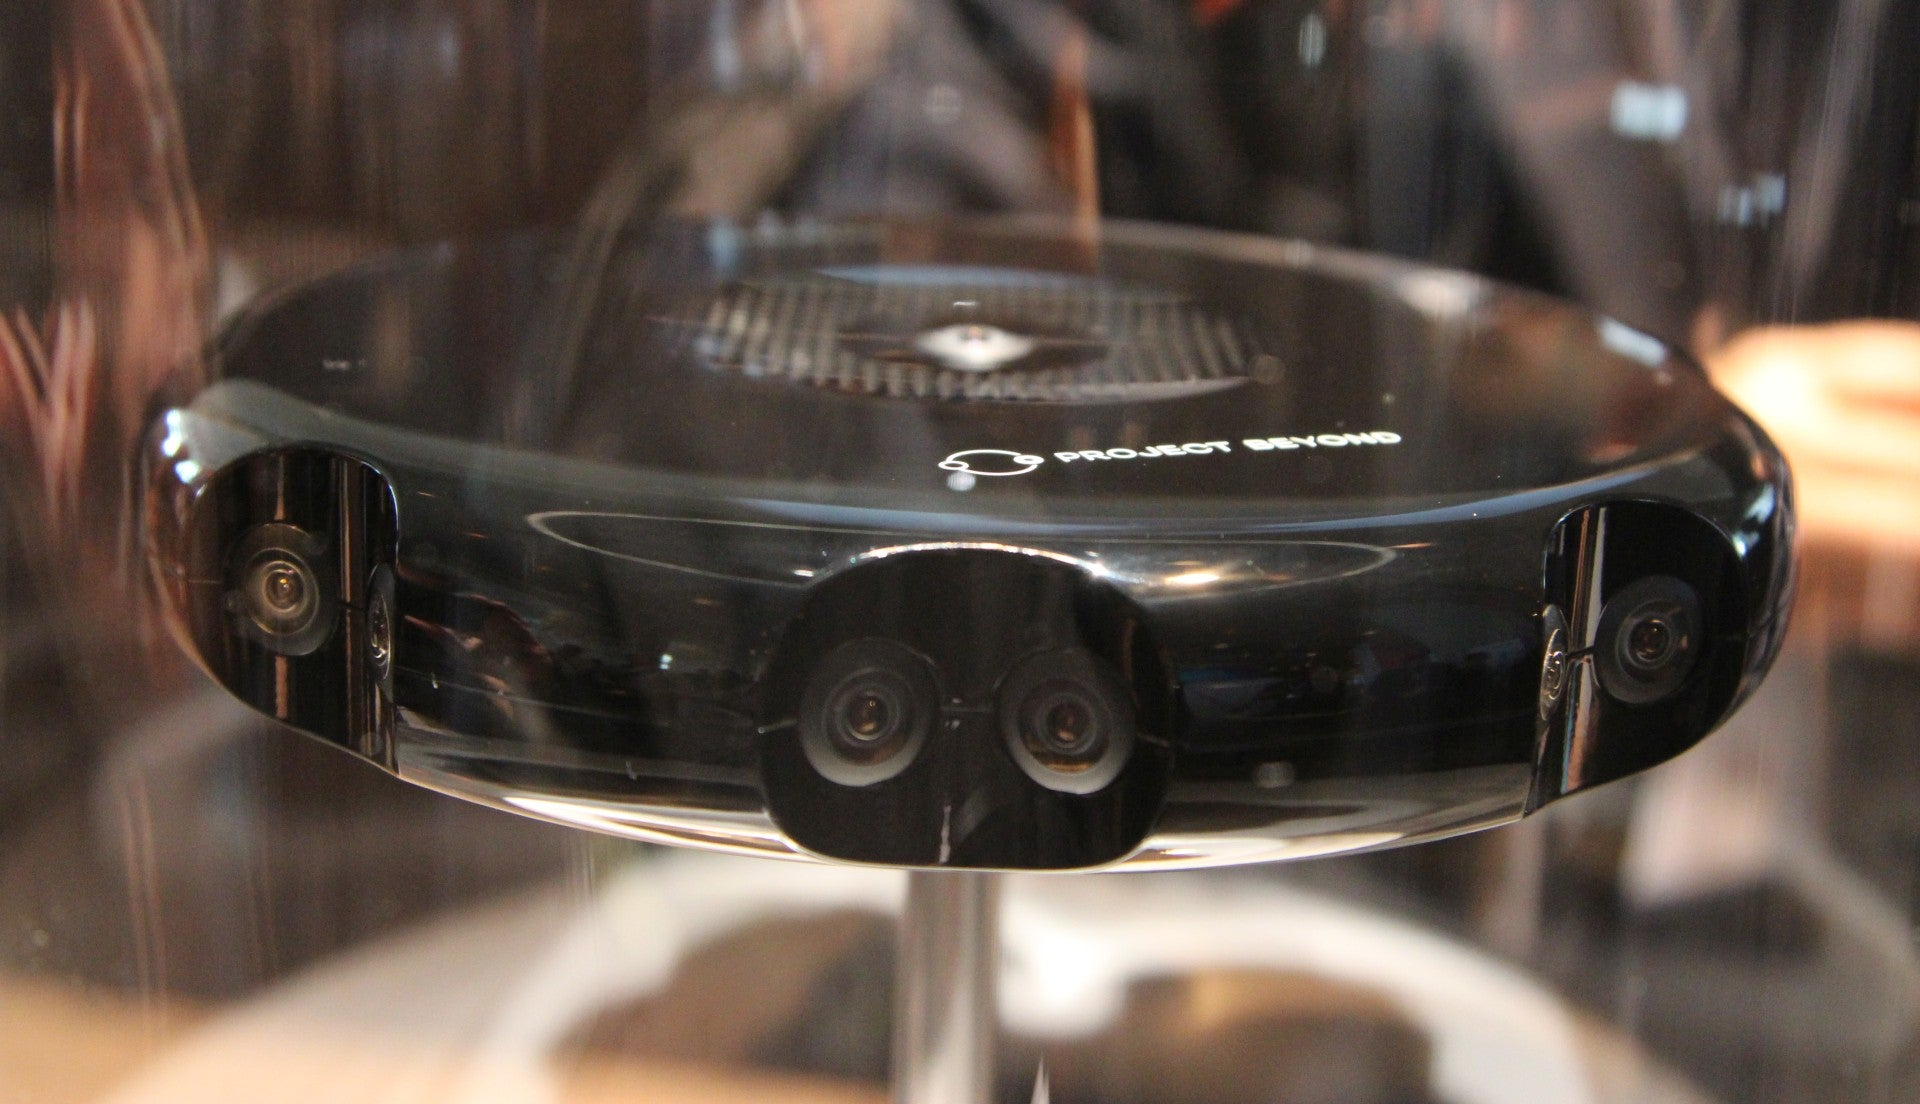 Samsung Project Beyond: A 360° Camera For Streaming Virtual Reality